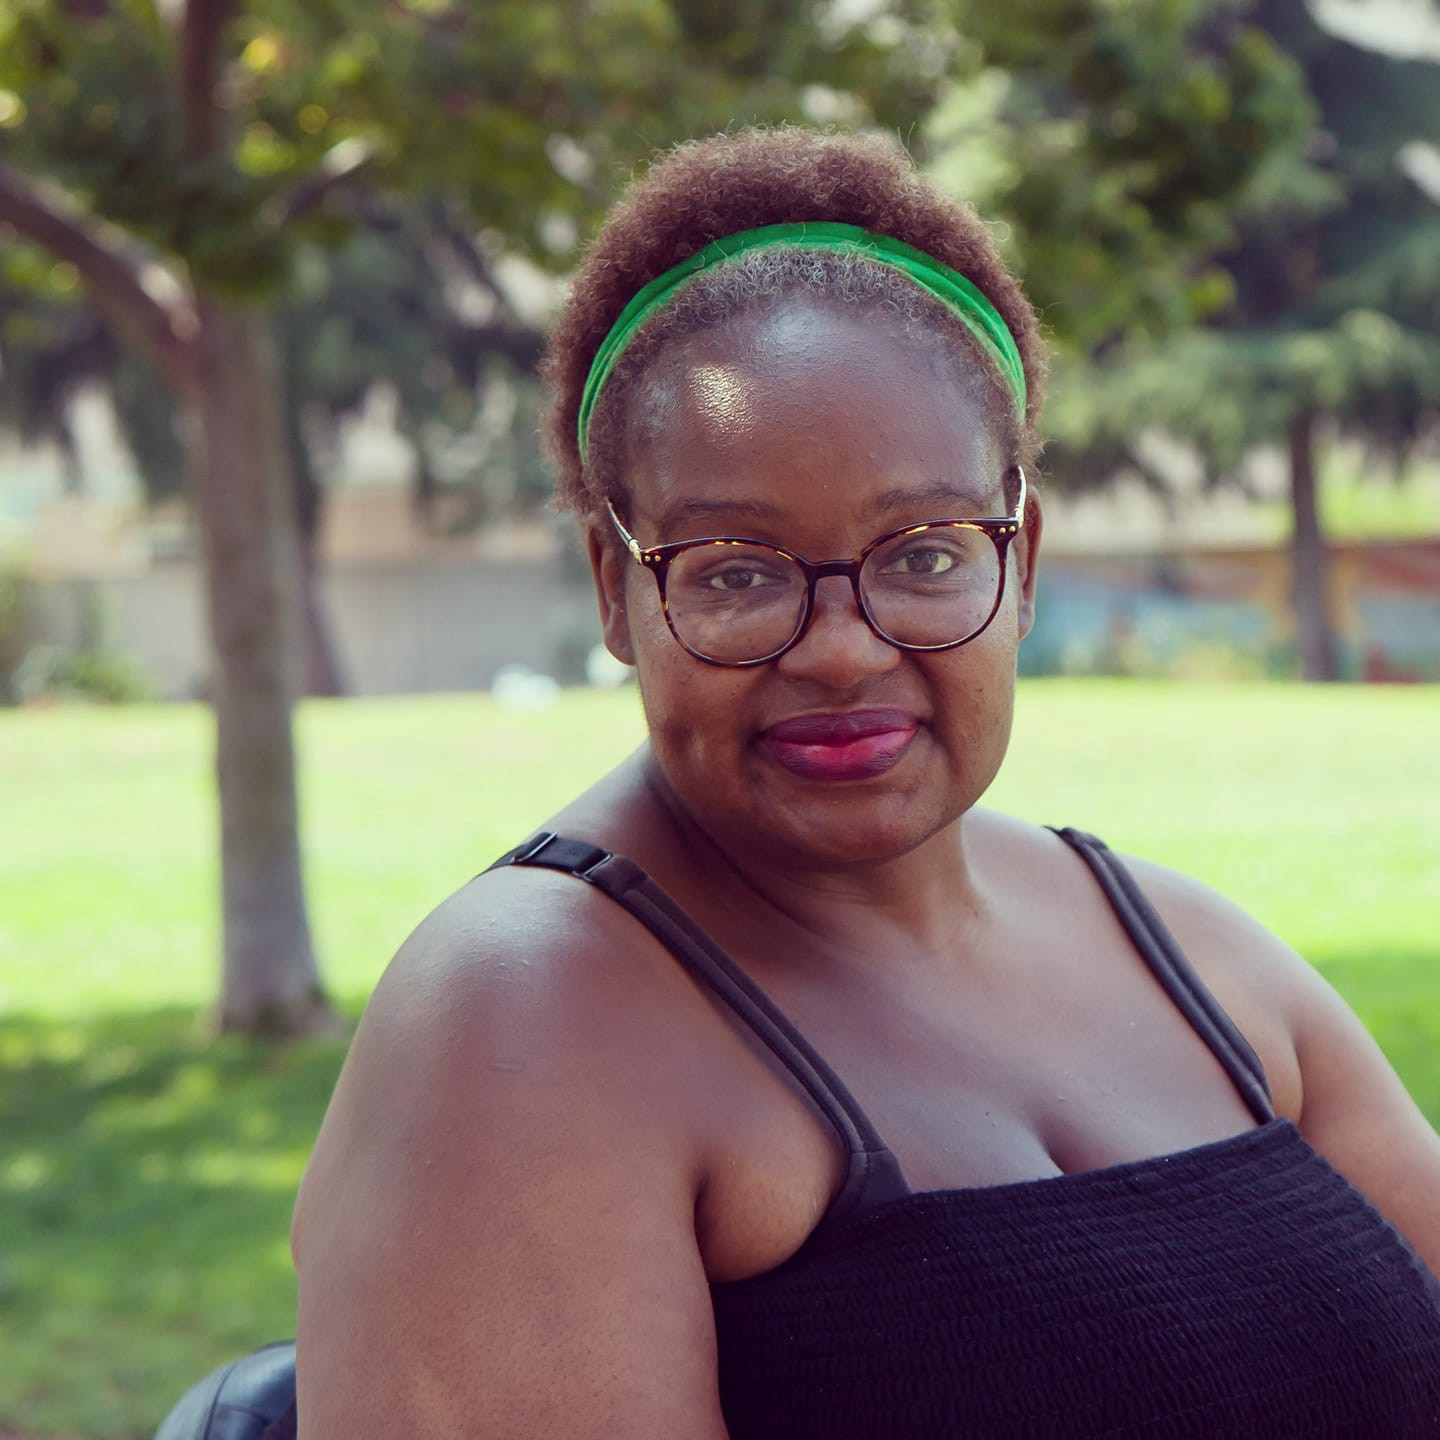 A Black woman with short hair, a green headband, brown-framed glasses, a black tank top & pink lipstick smiles cutely.